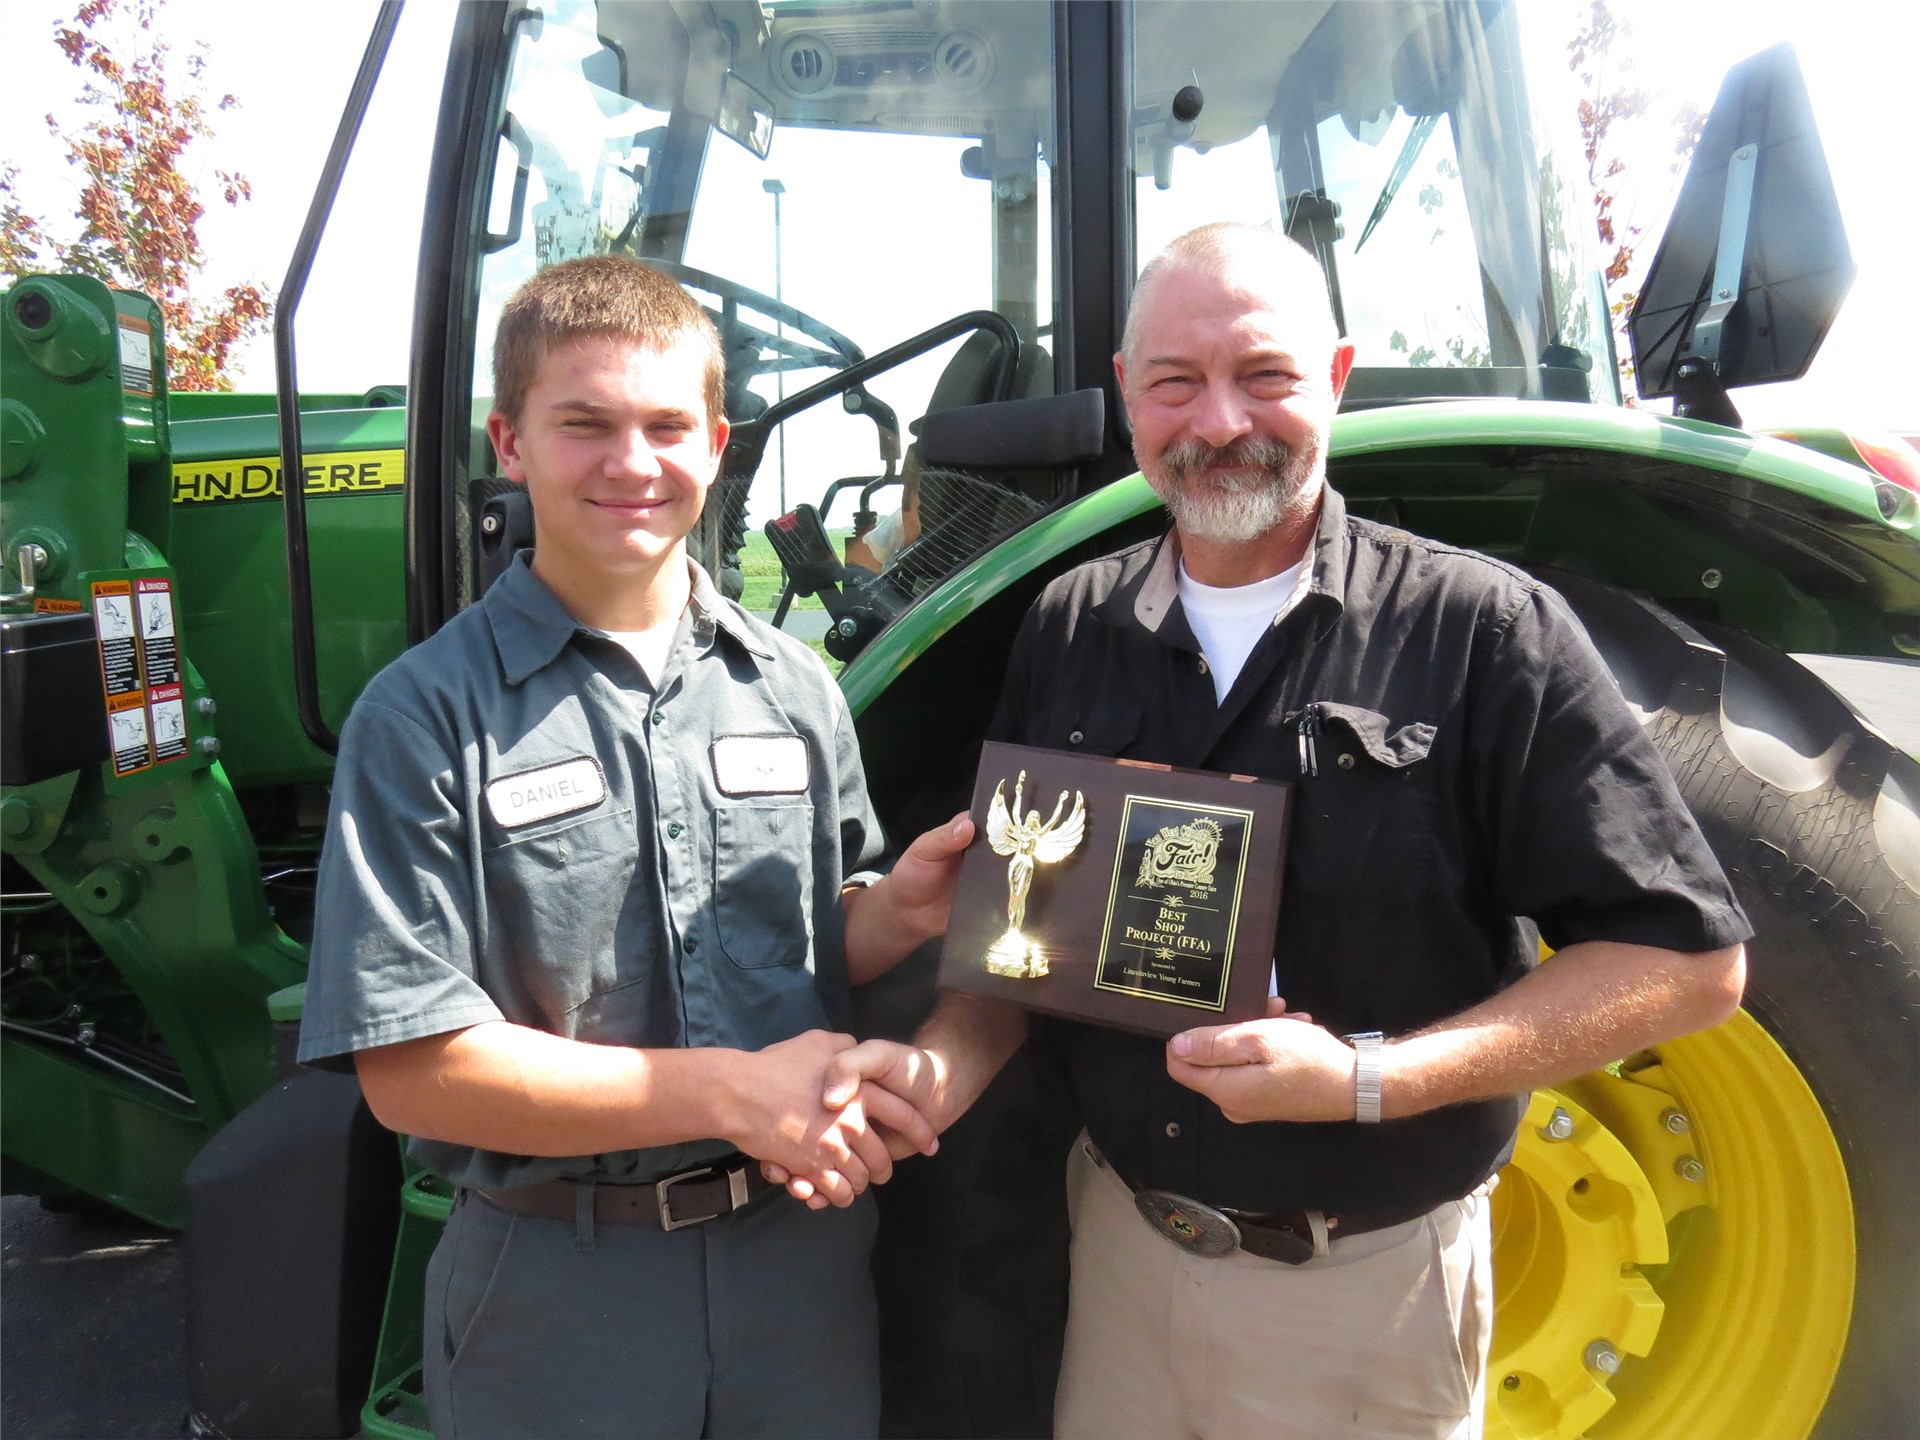 Male Ag student receiving a plaque from his teacher in front of a green tractor